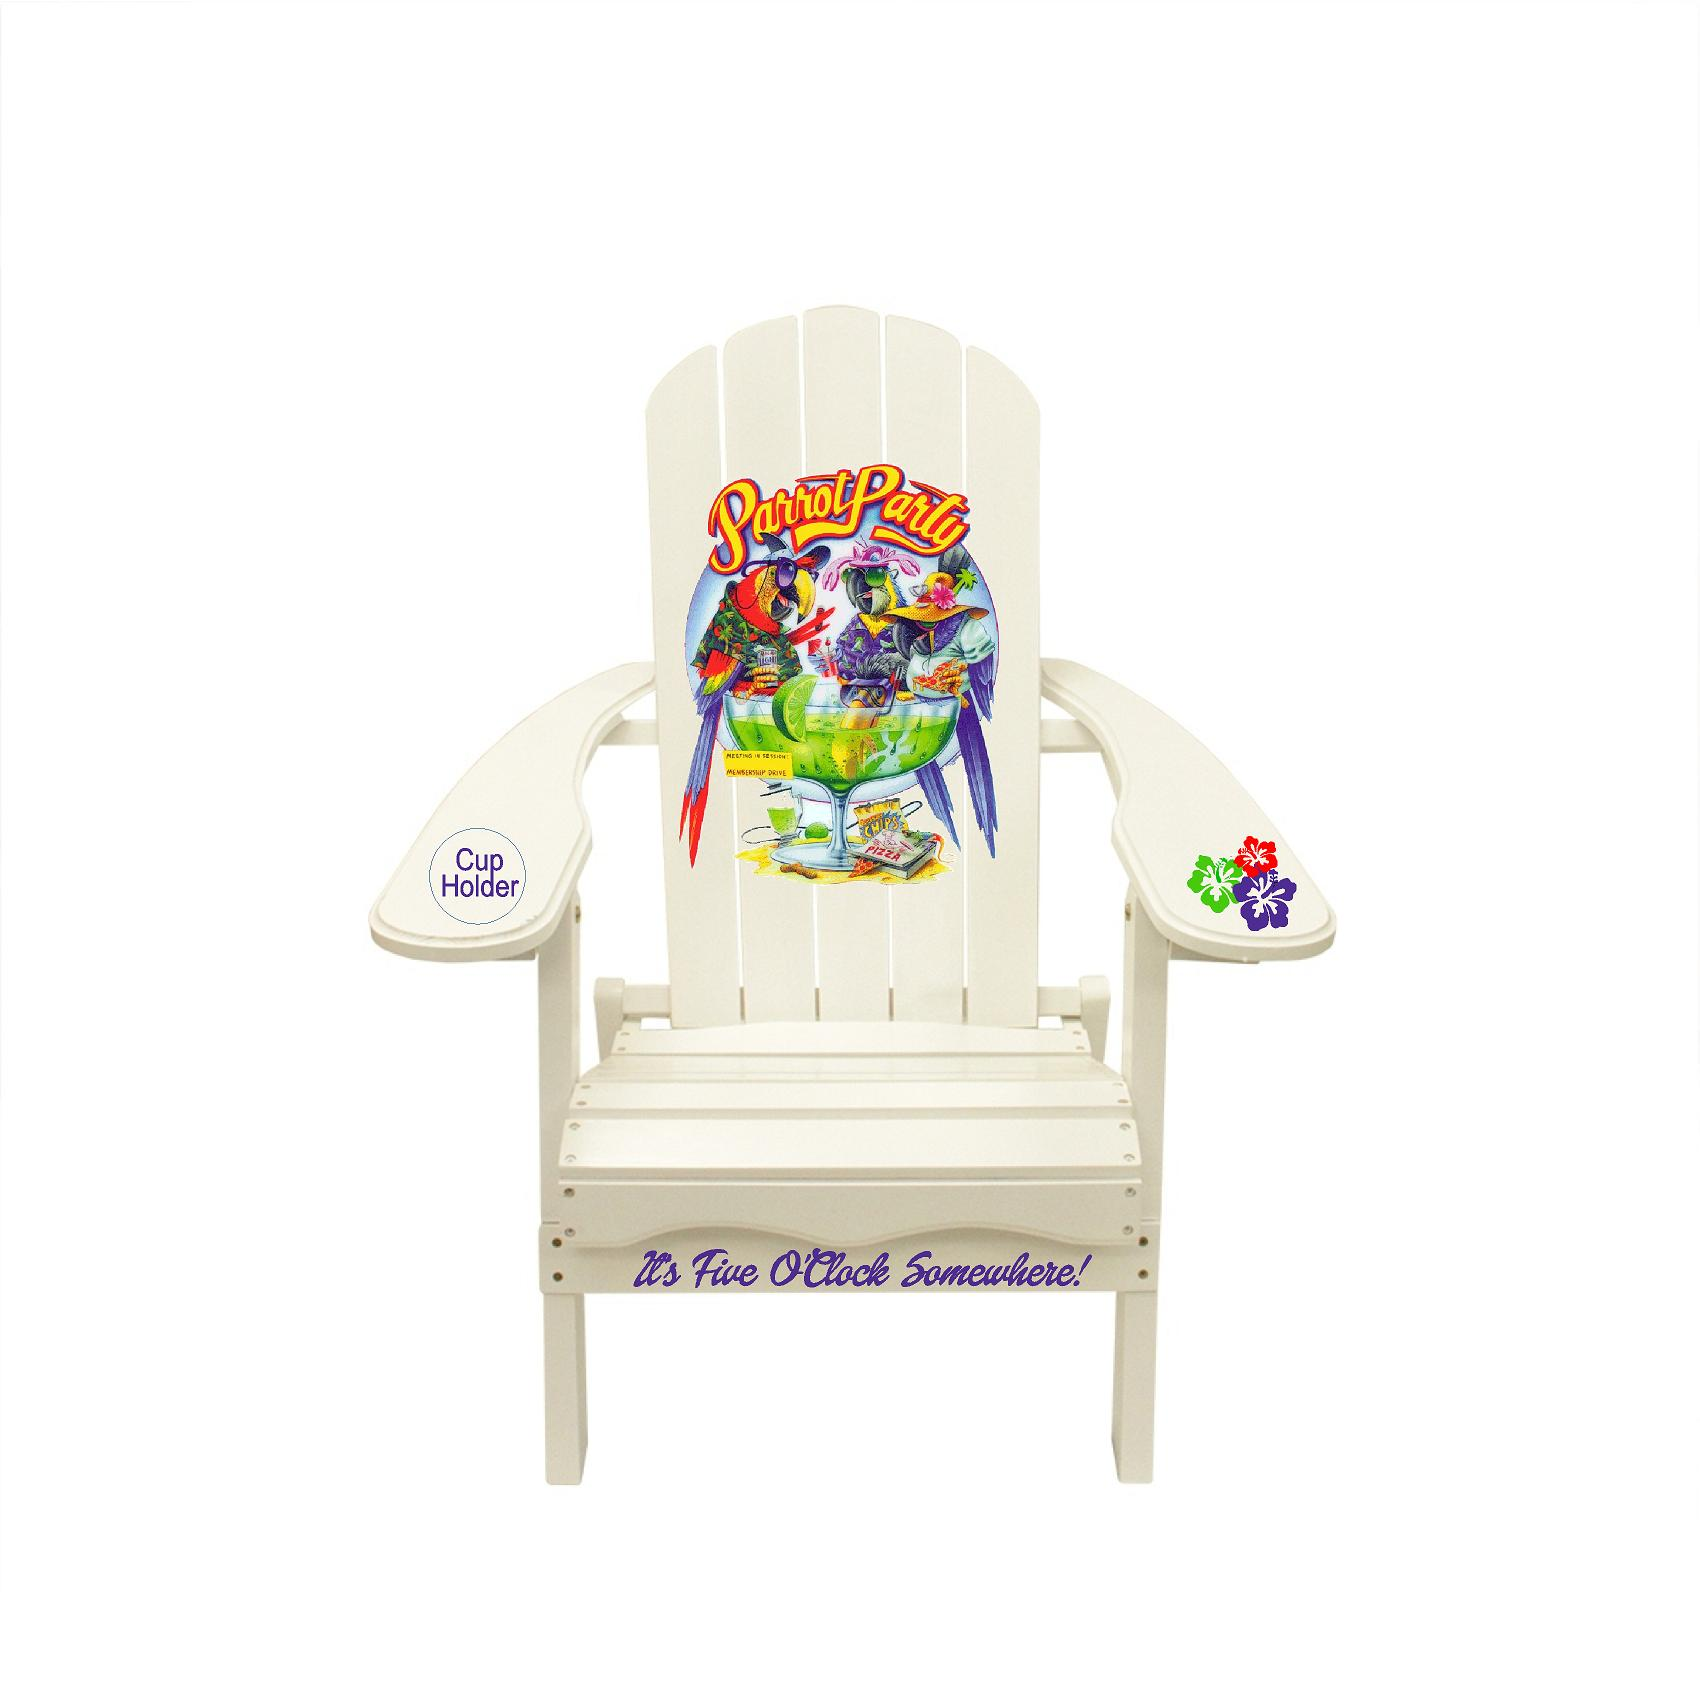 It's 5 O'clock Somewhere Parrot Party Custom Outdoor Wood Adirondack Lounge Chair